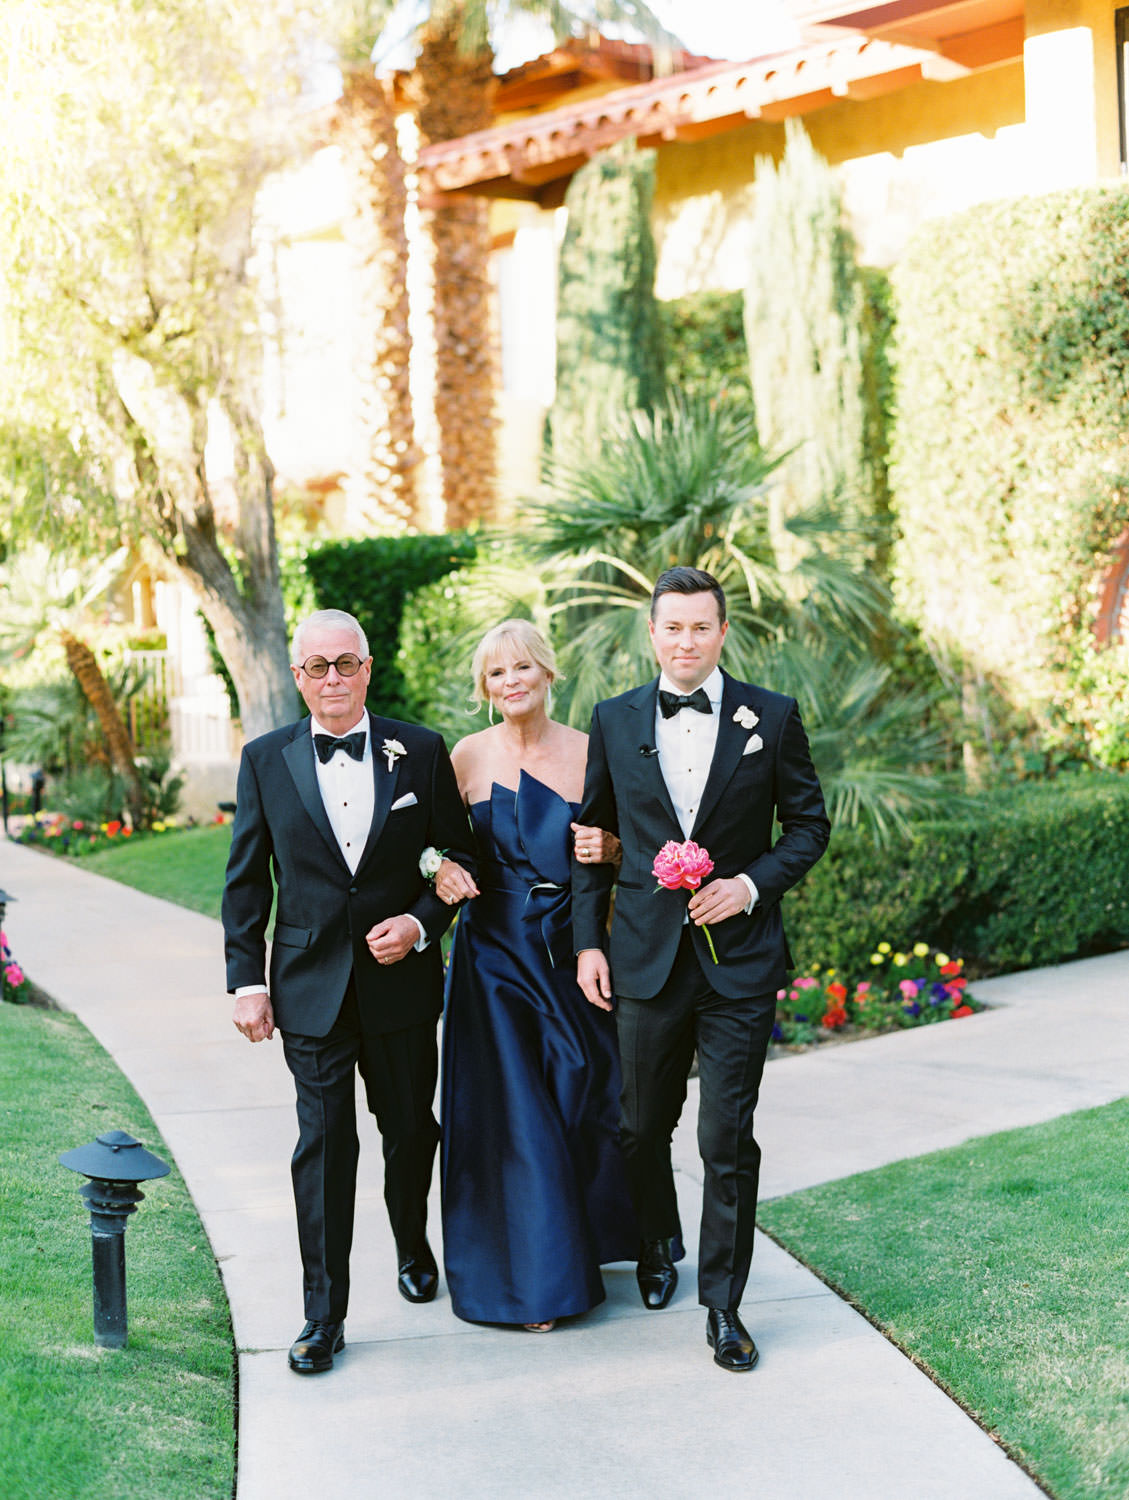 Groom walking down the aisle with his parents. Mother of the bride in a satin navy gown. Miramonte Resort ceremony on Miramonte Green. Film photography by Cavin Elizabeth.